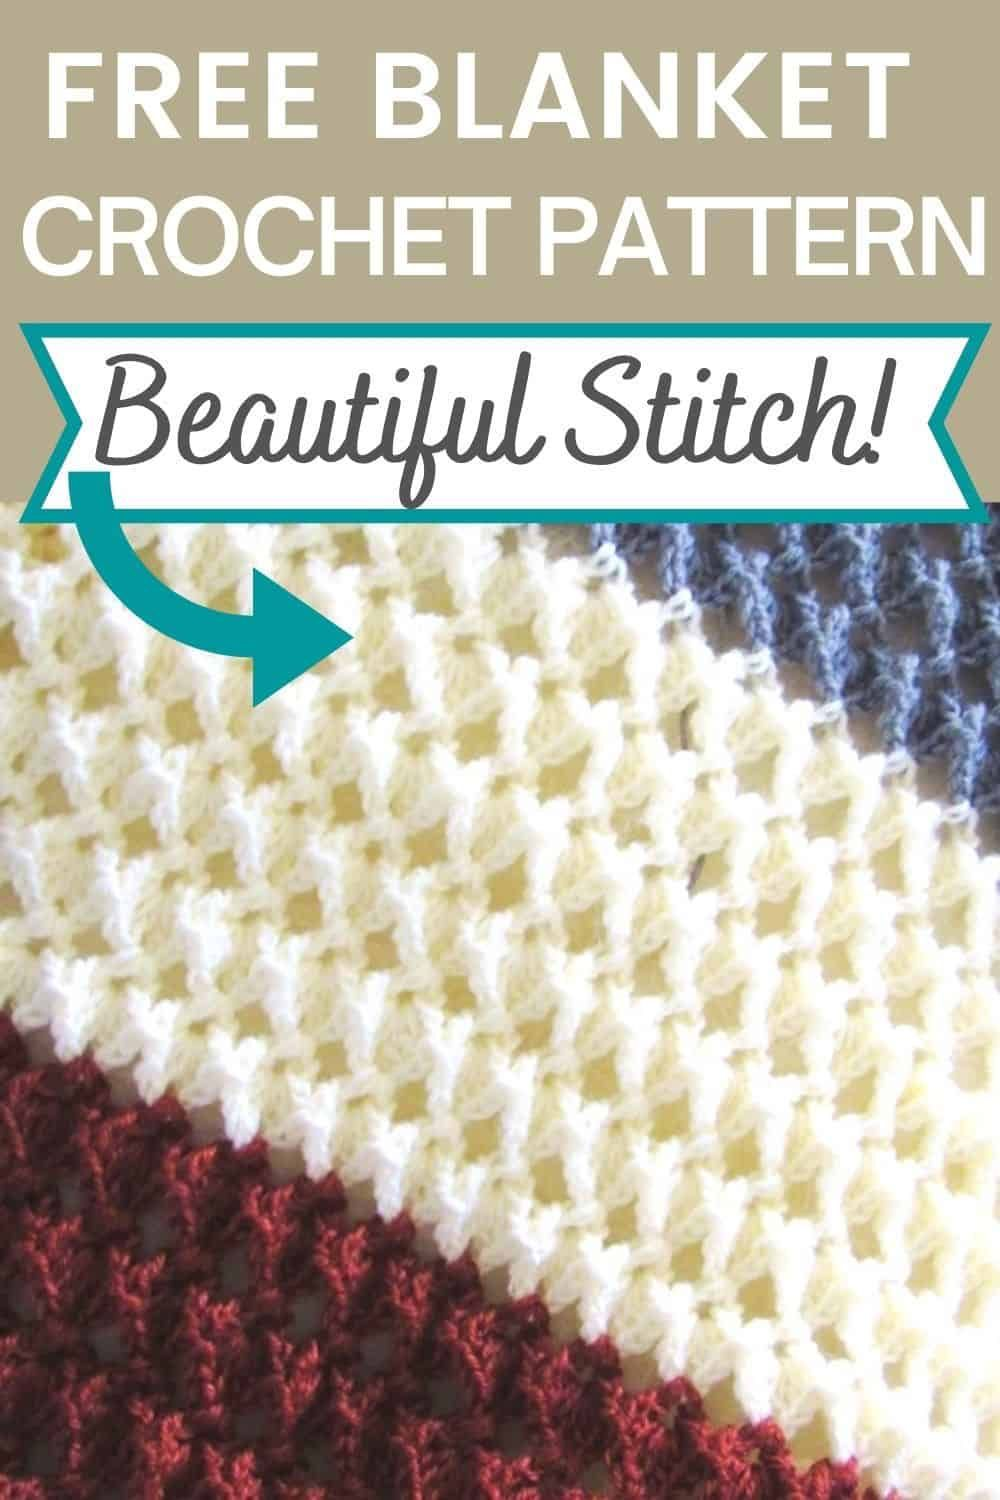 Do you love crochet blanket patterns that are quick to work up? Then you